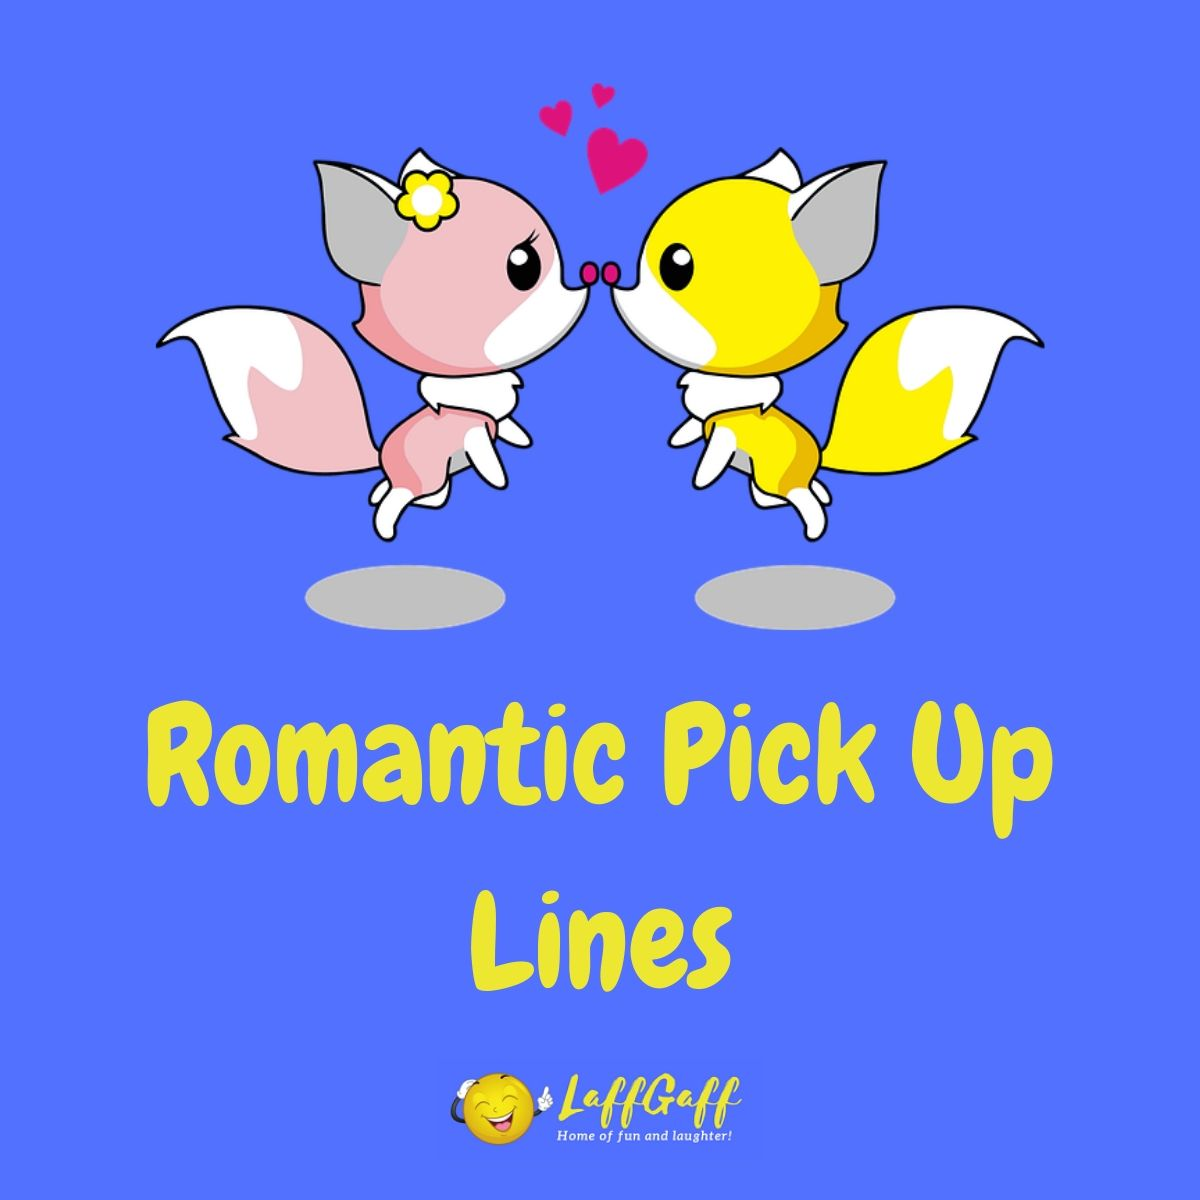 Featured image for a page of romantic pick up lines.